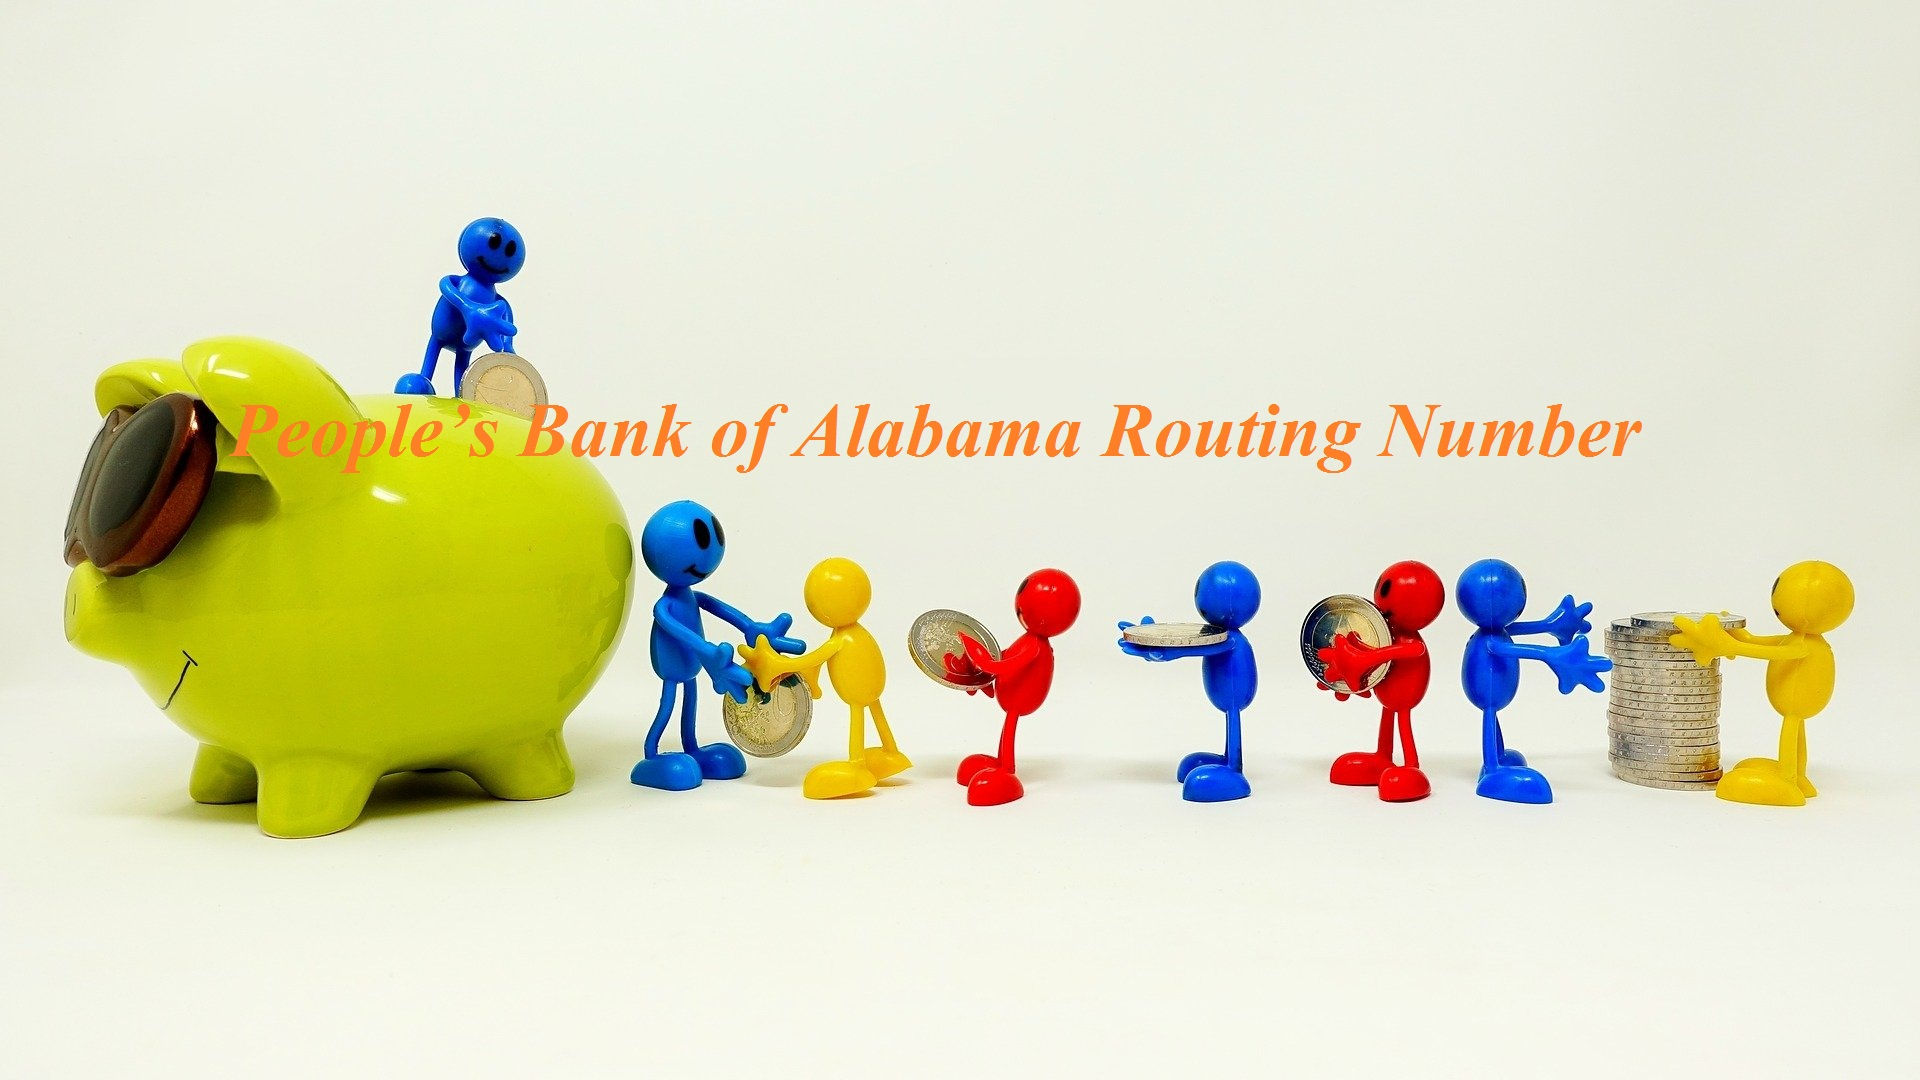 People's Bank of Alabama Routing Number